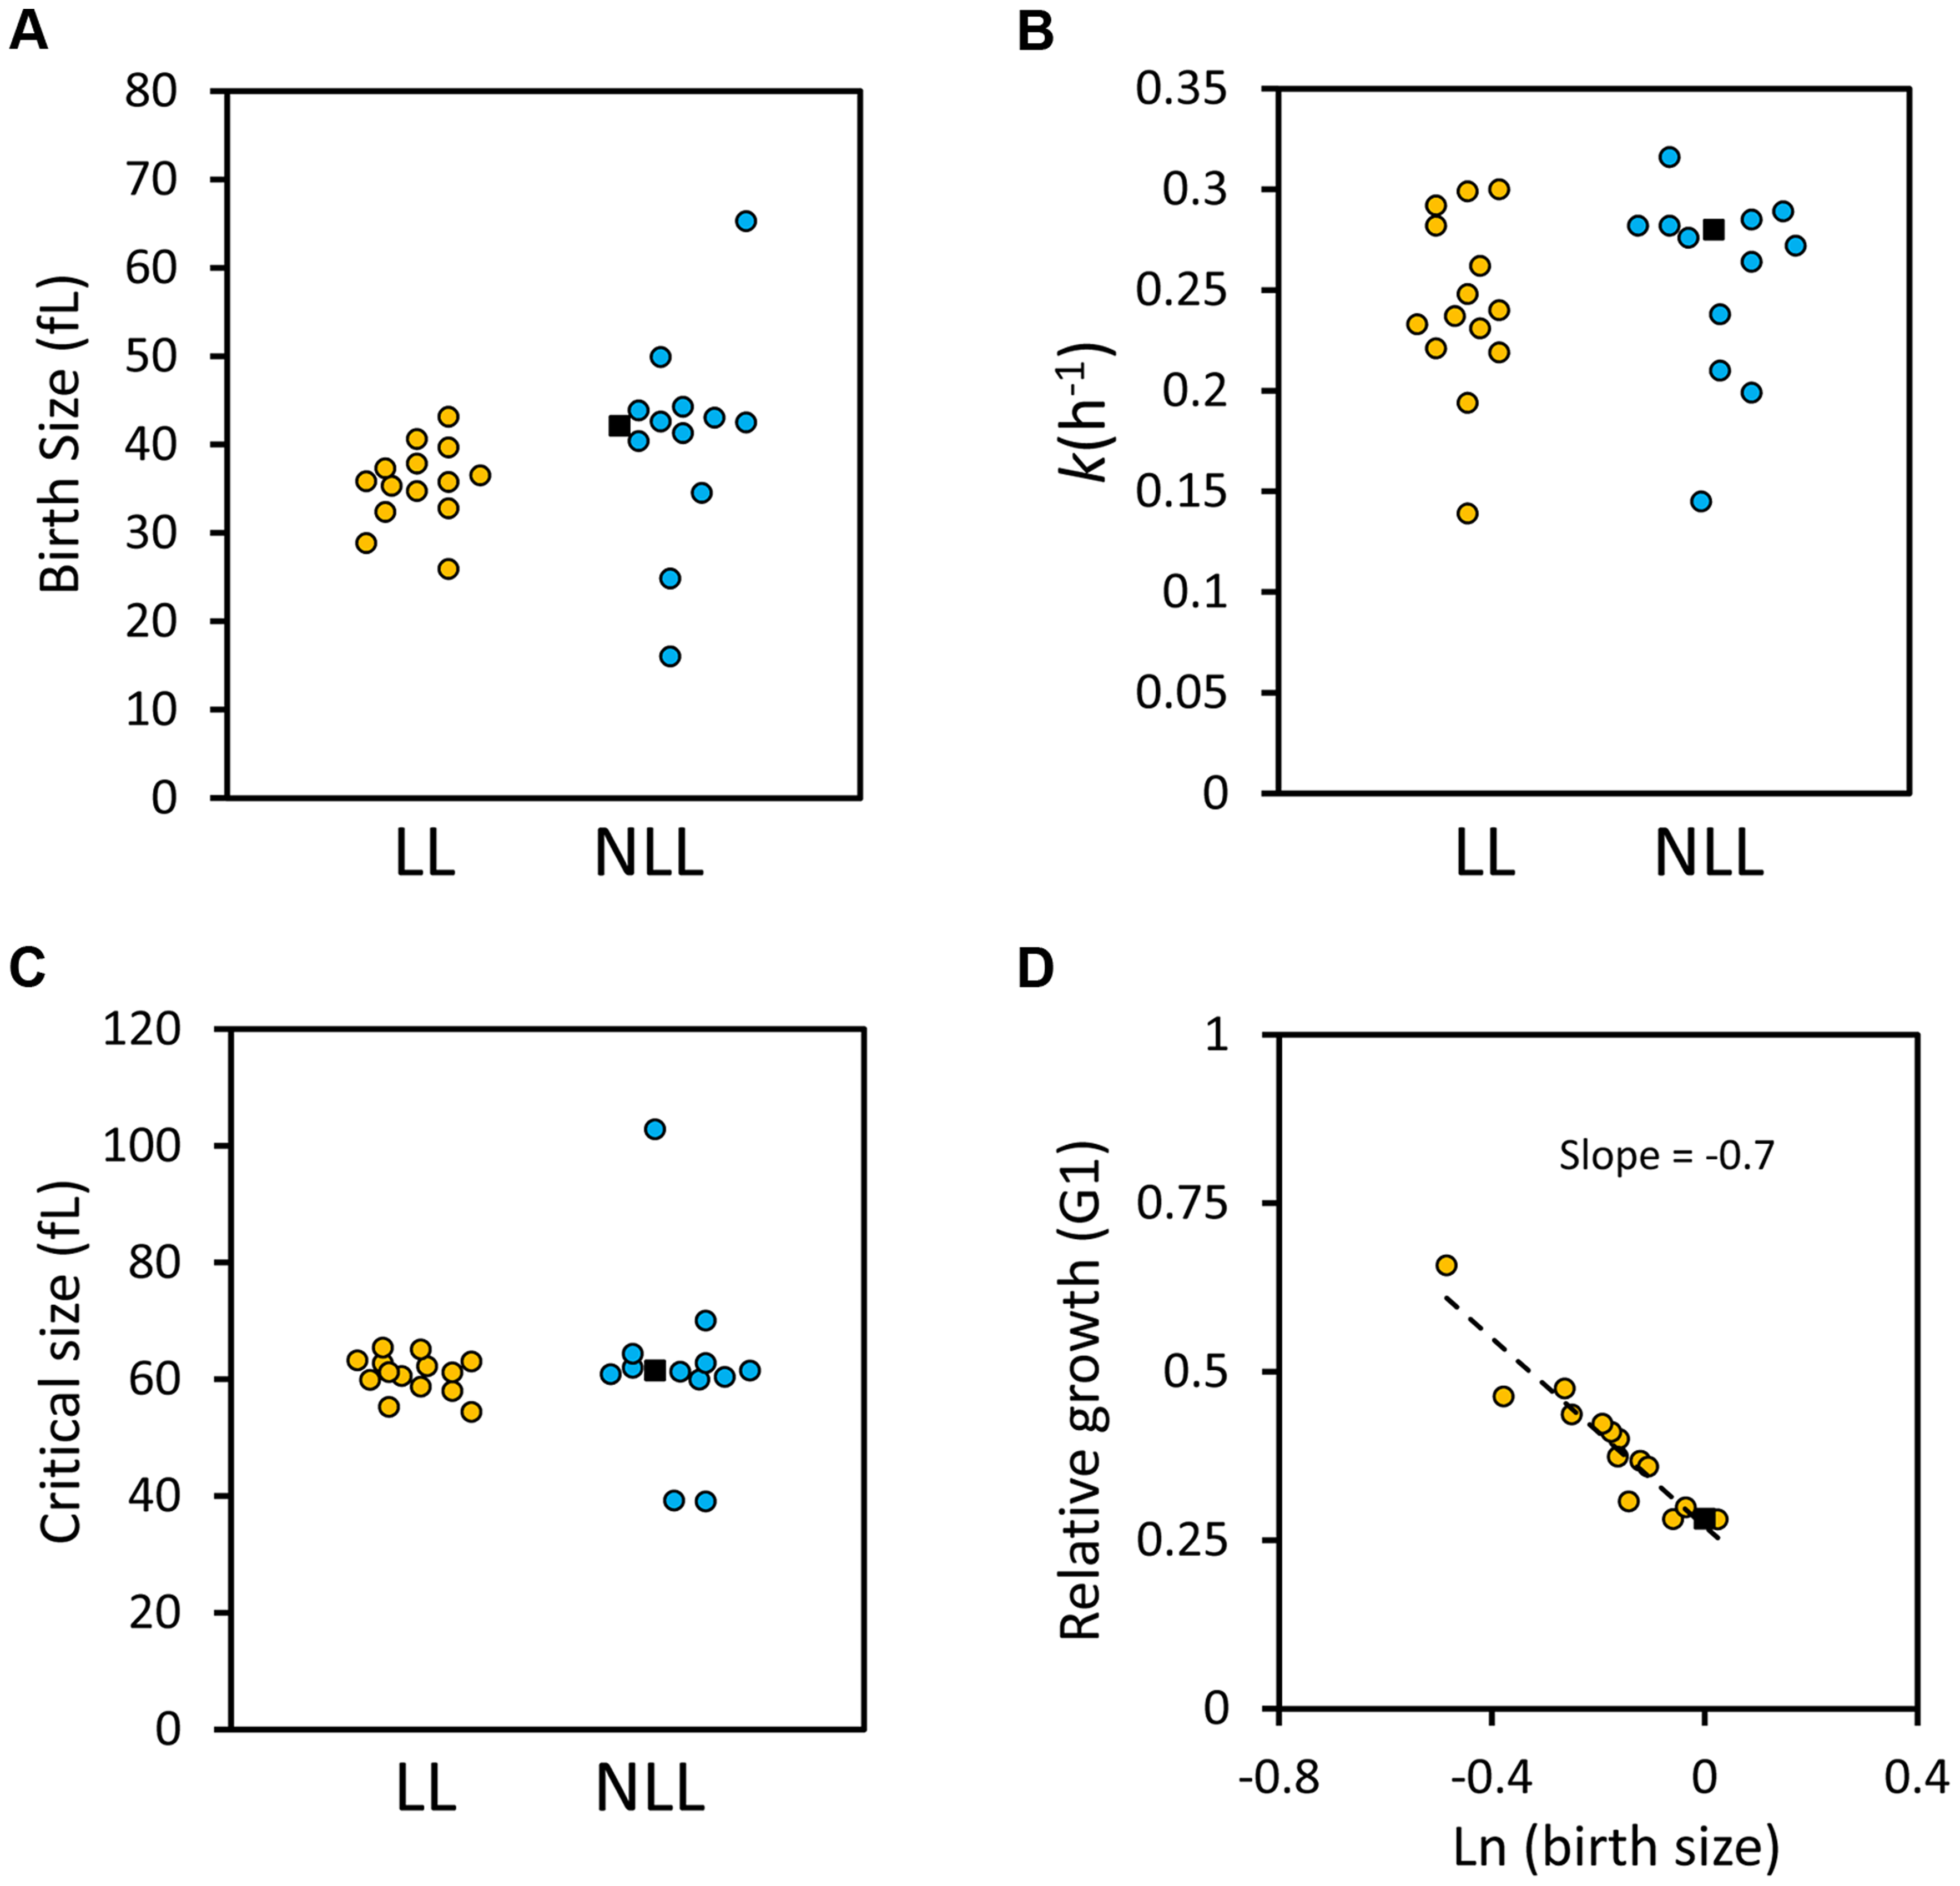 G1 phase cell cycle parameters of LL and NLL strains.